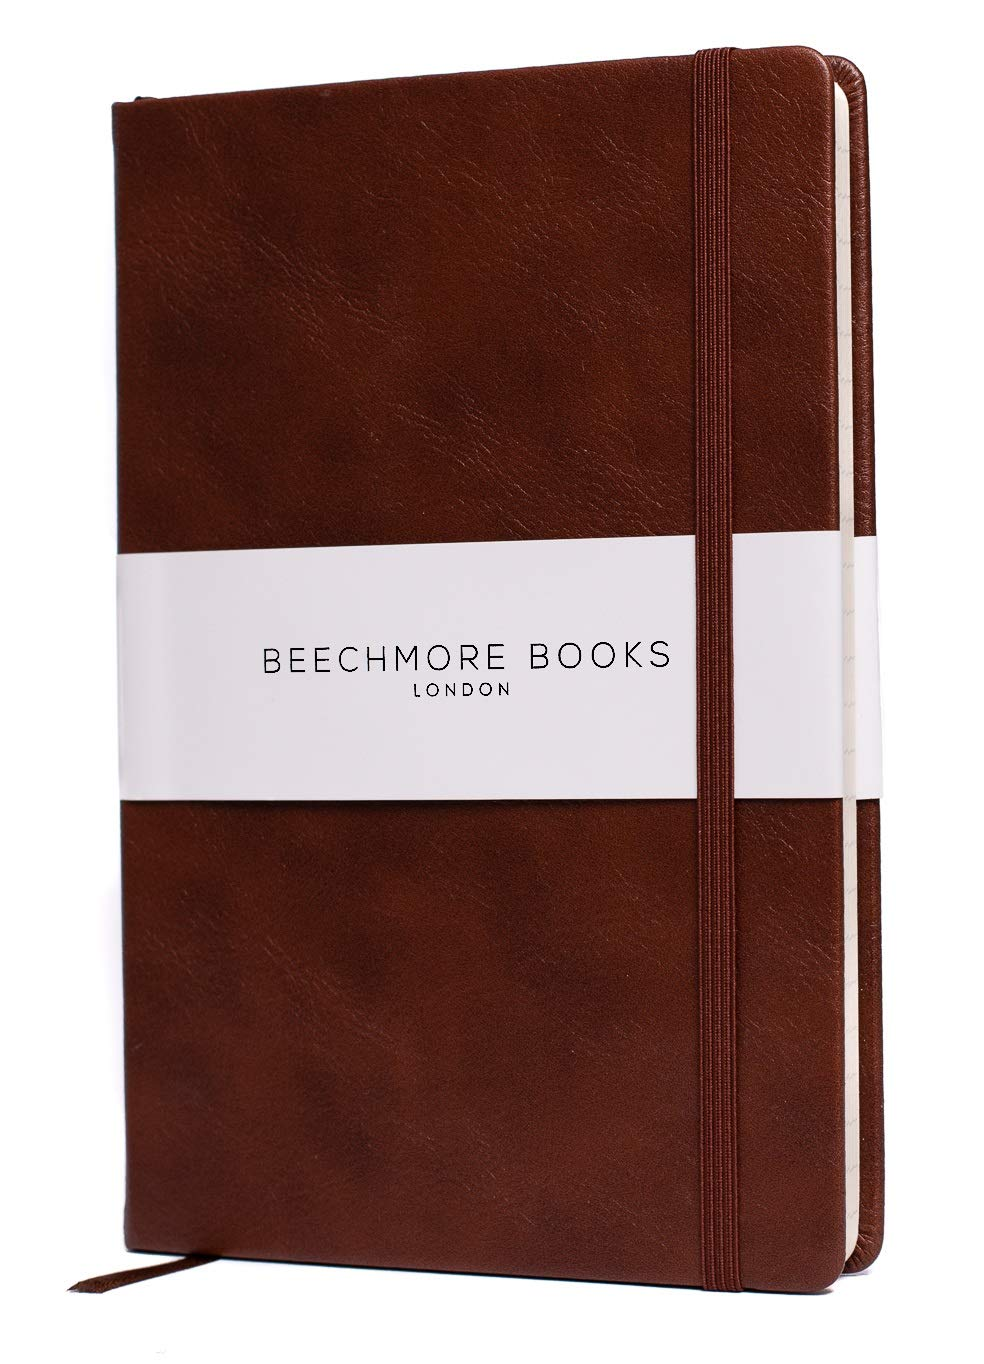 Ruled Notebook - Premium British A5 Journal by Beechmore Books   Hardcover Vegan Leather, Thick 120gsm Cream Paper, Professional Lined Notebook in Gift Box (Chestnut Brown) by Beechmore Books